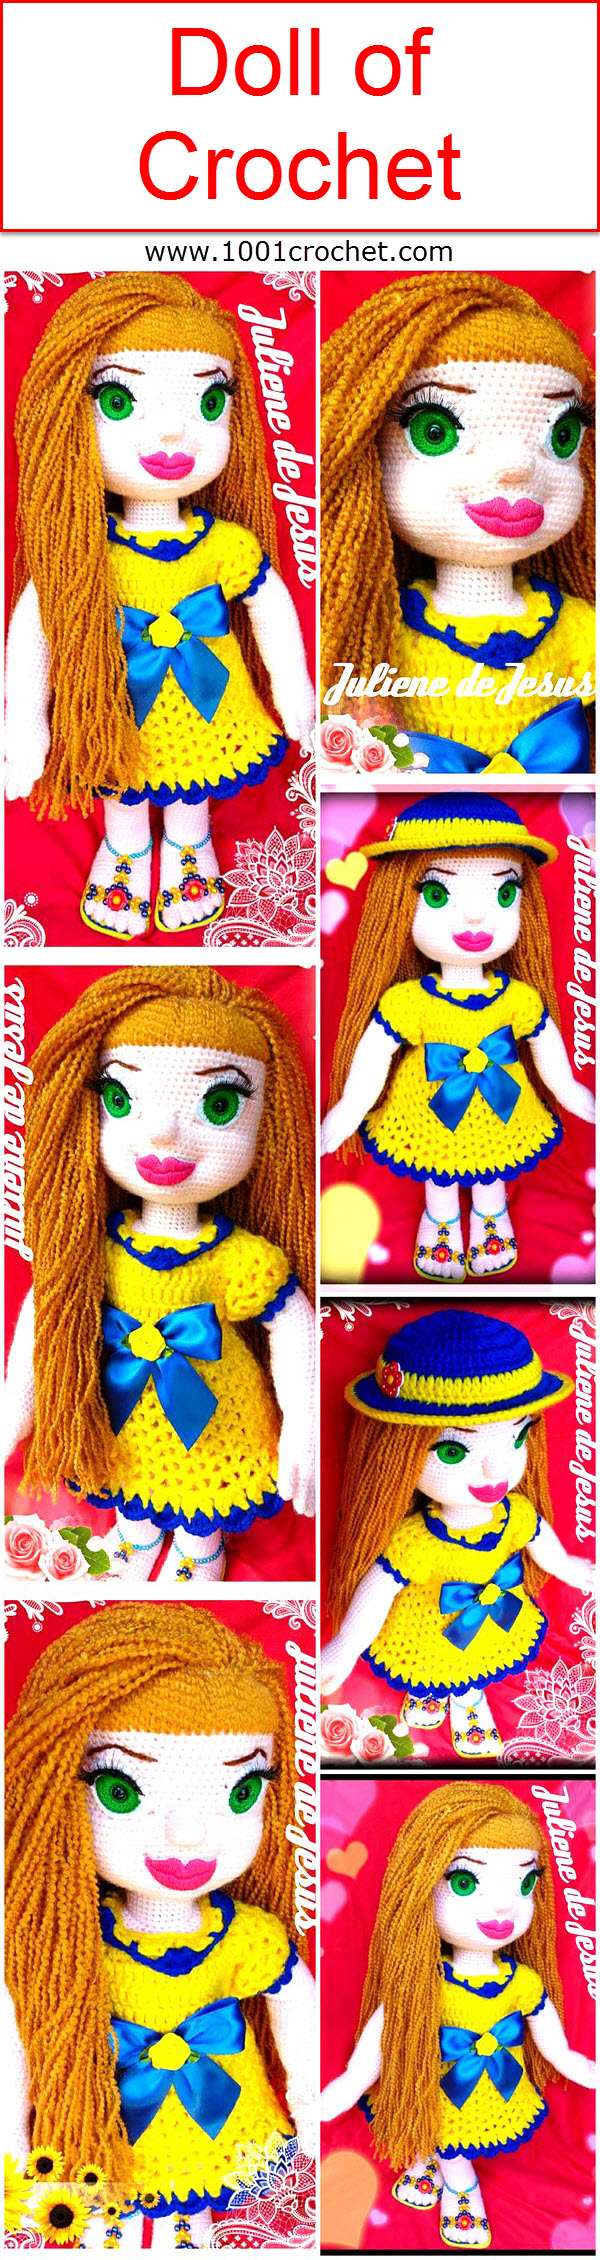 doll-of-crochet-by-juliene-de-jesus%e2%80%8e